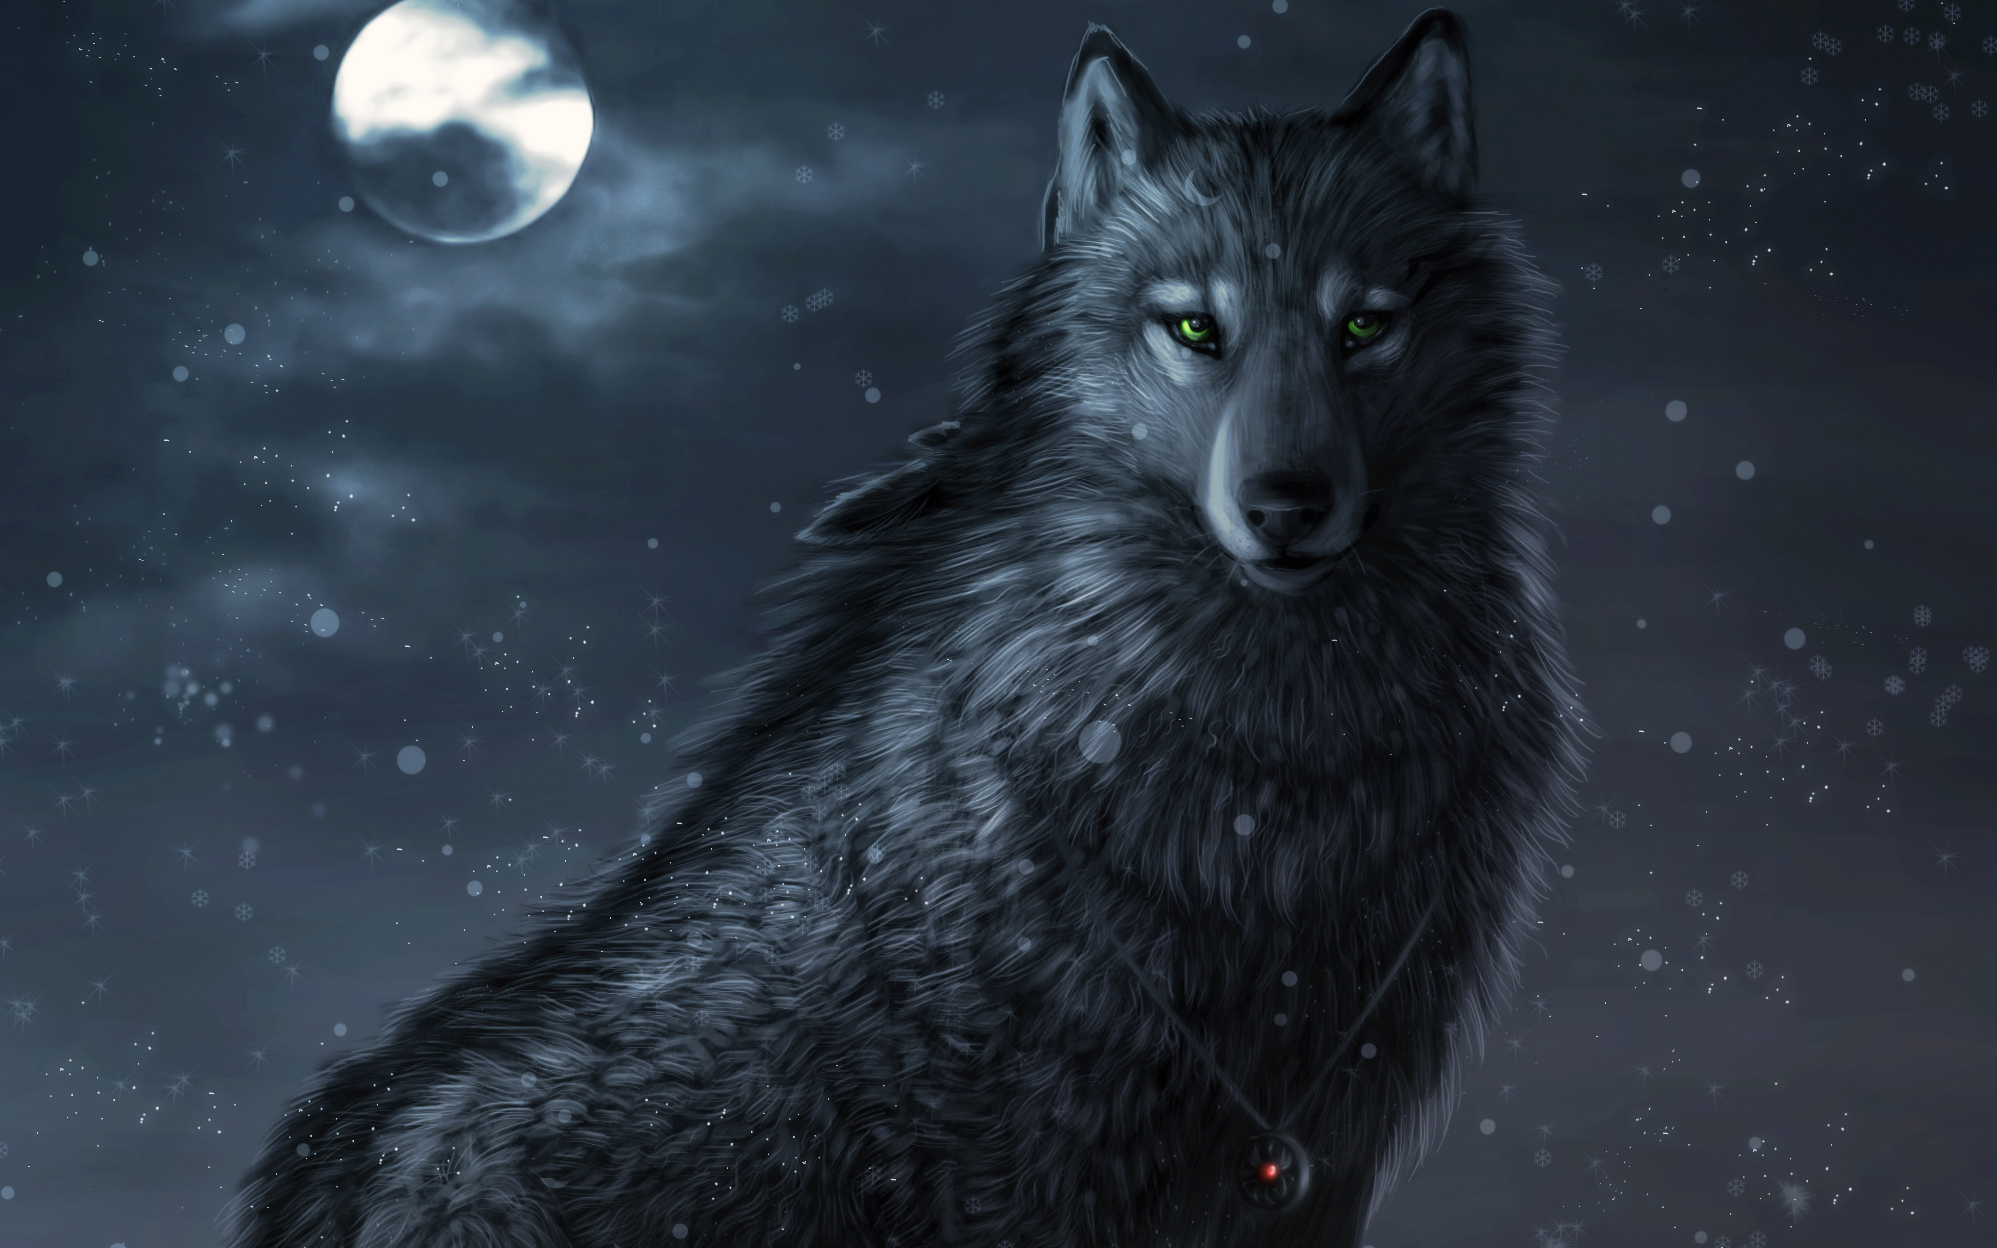 Wolf Computer Wallpapers Desktop Backgrounds 1997x1248 ID229738